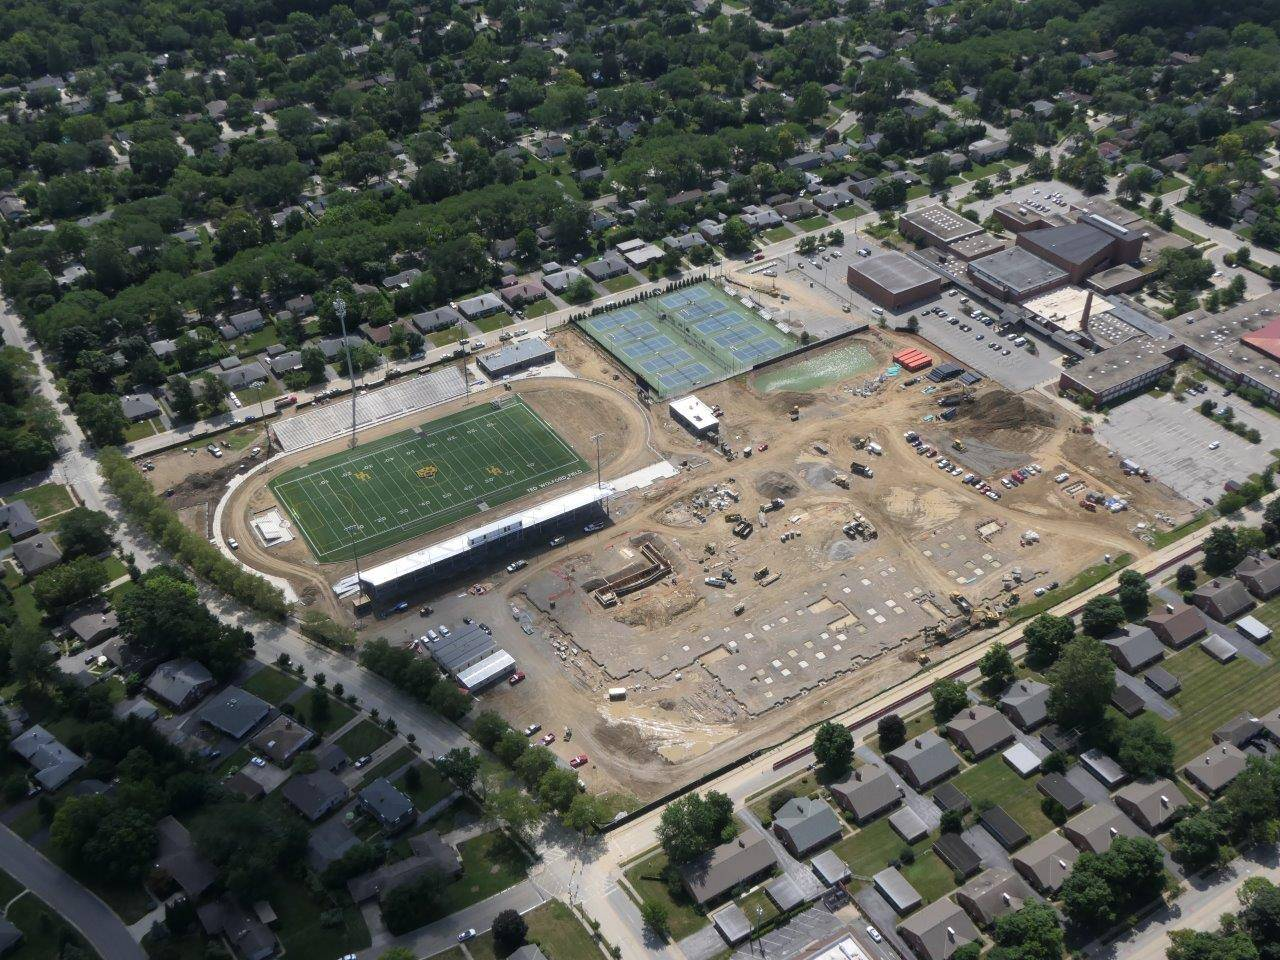 Aerial of the high school site looking southwest